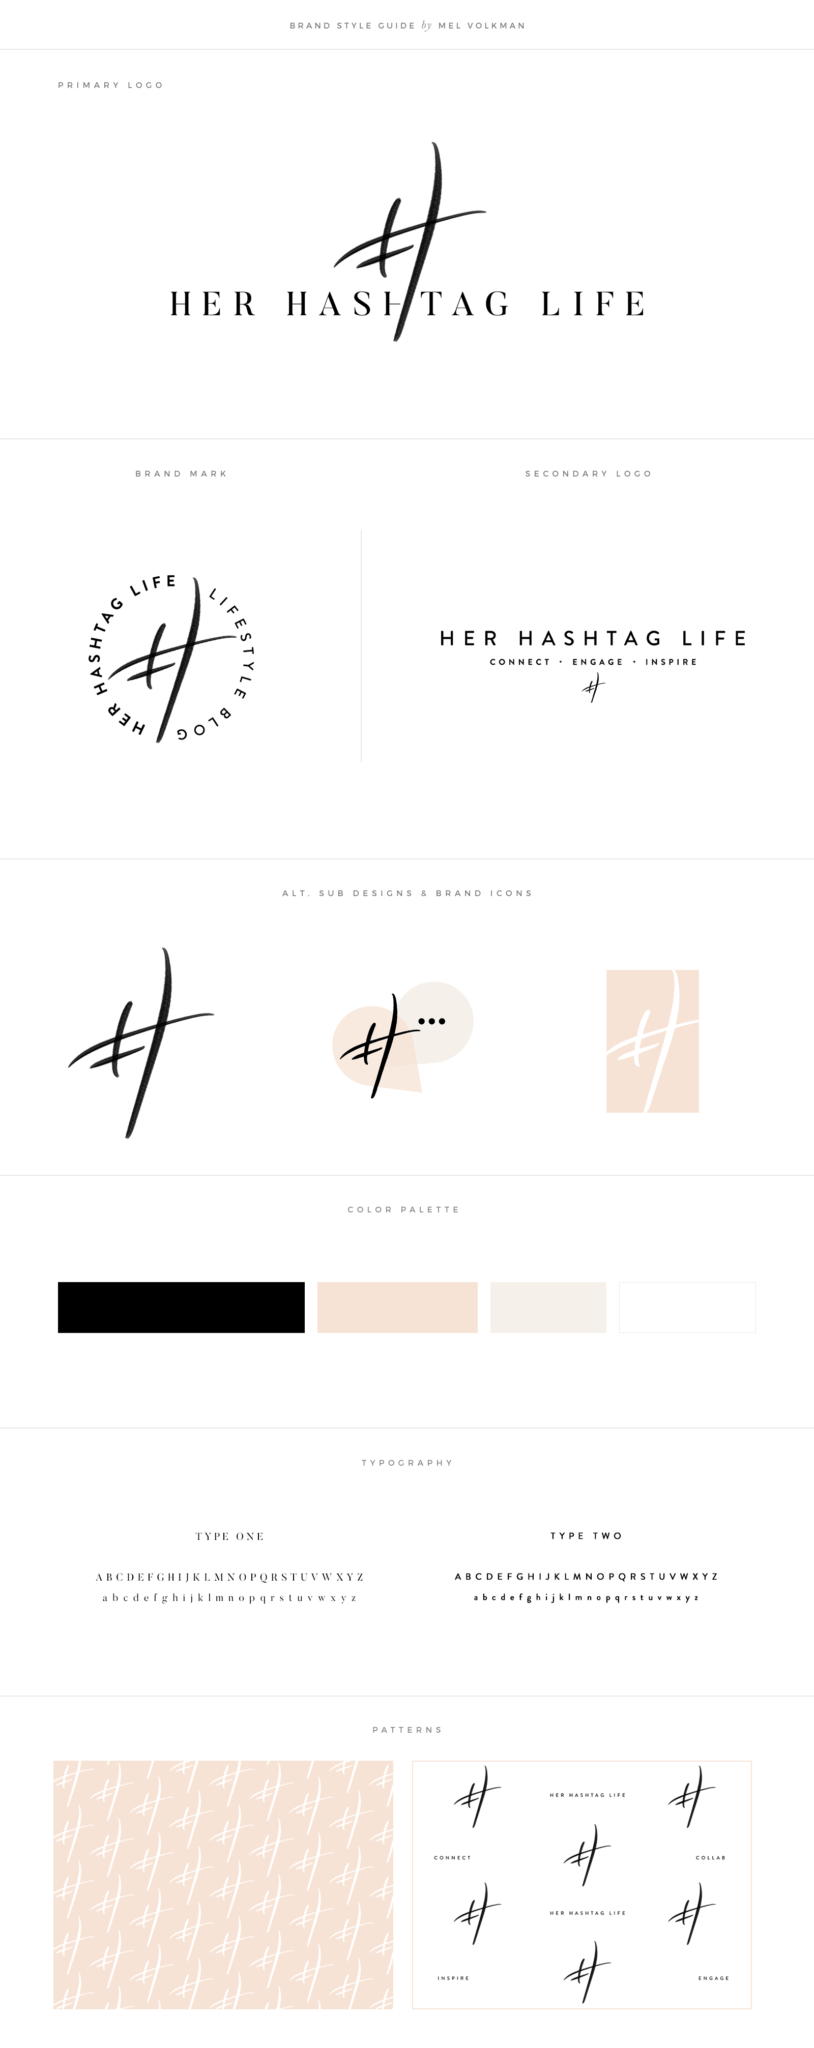 Brand Style Guide by Mel Volkman for Her Hashtag Life